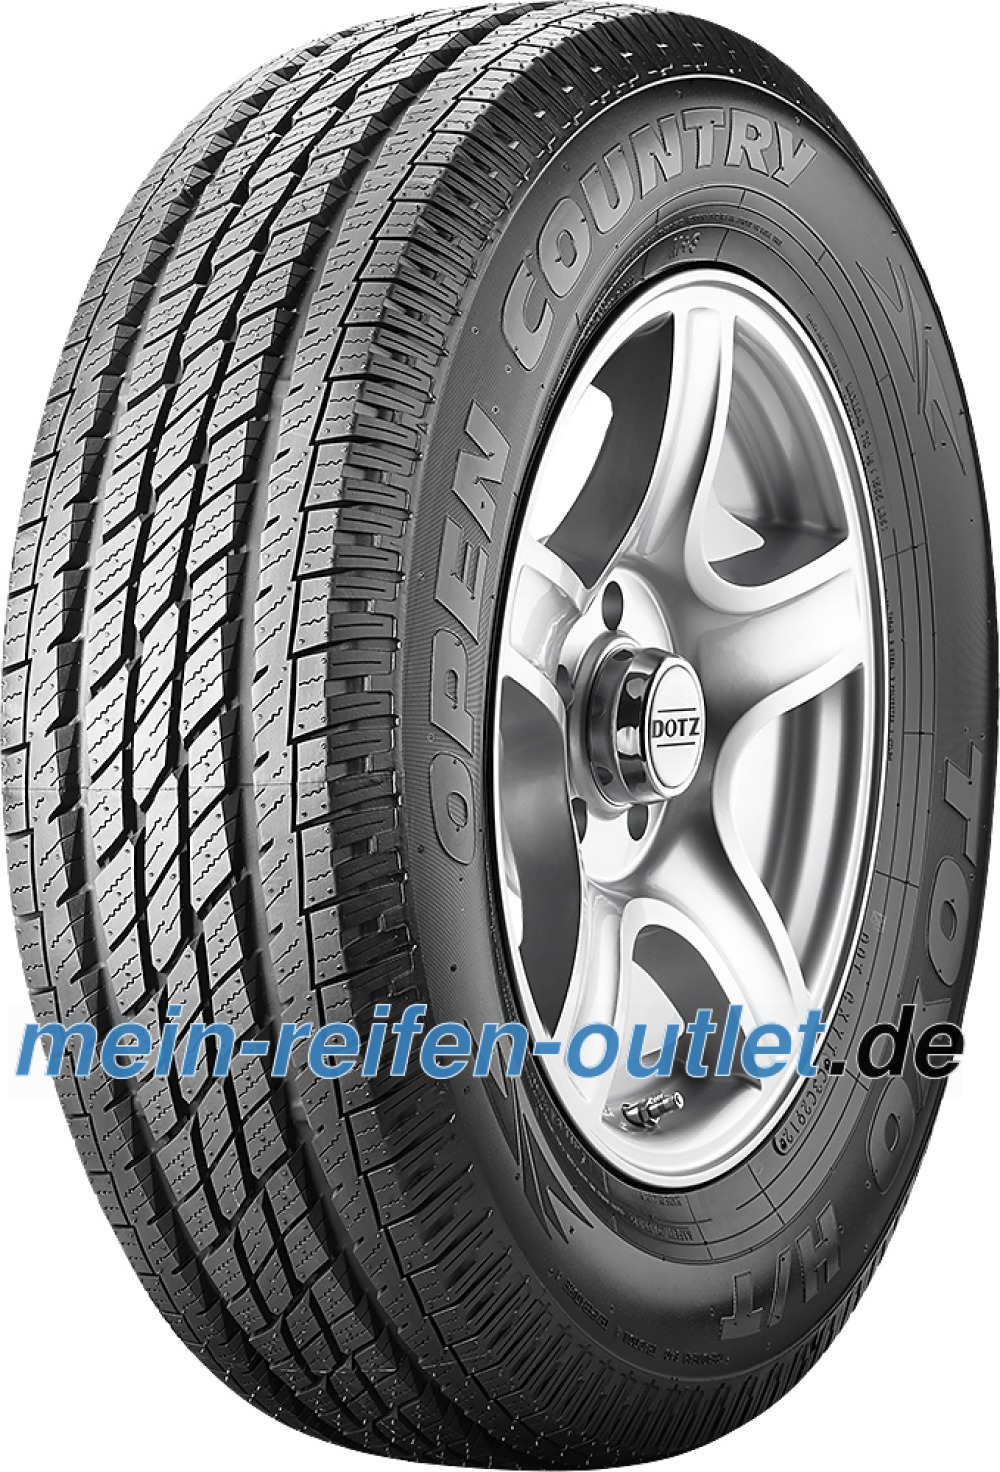 Toyo Open Country H/T ( LT265/75 R16 119/116S 8PR OWL )